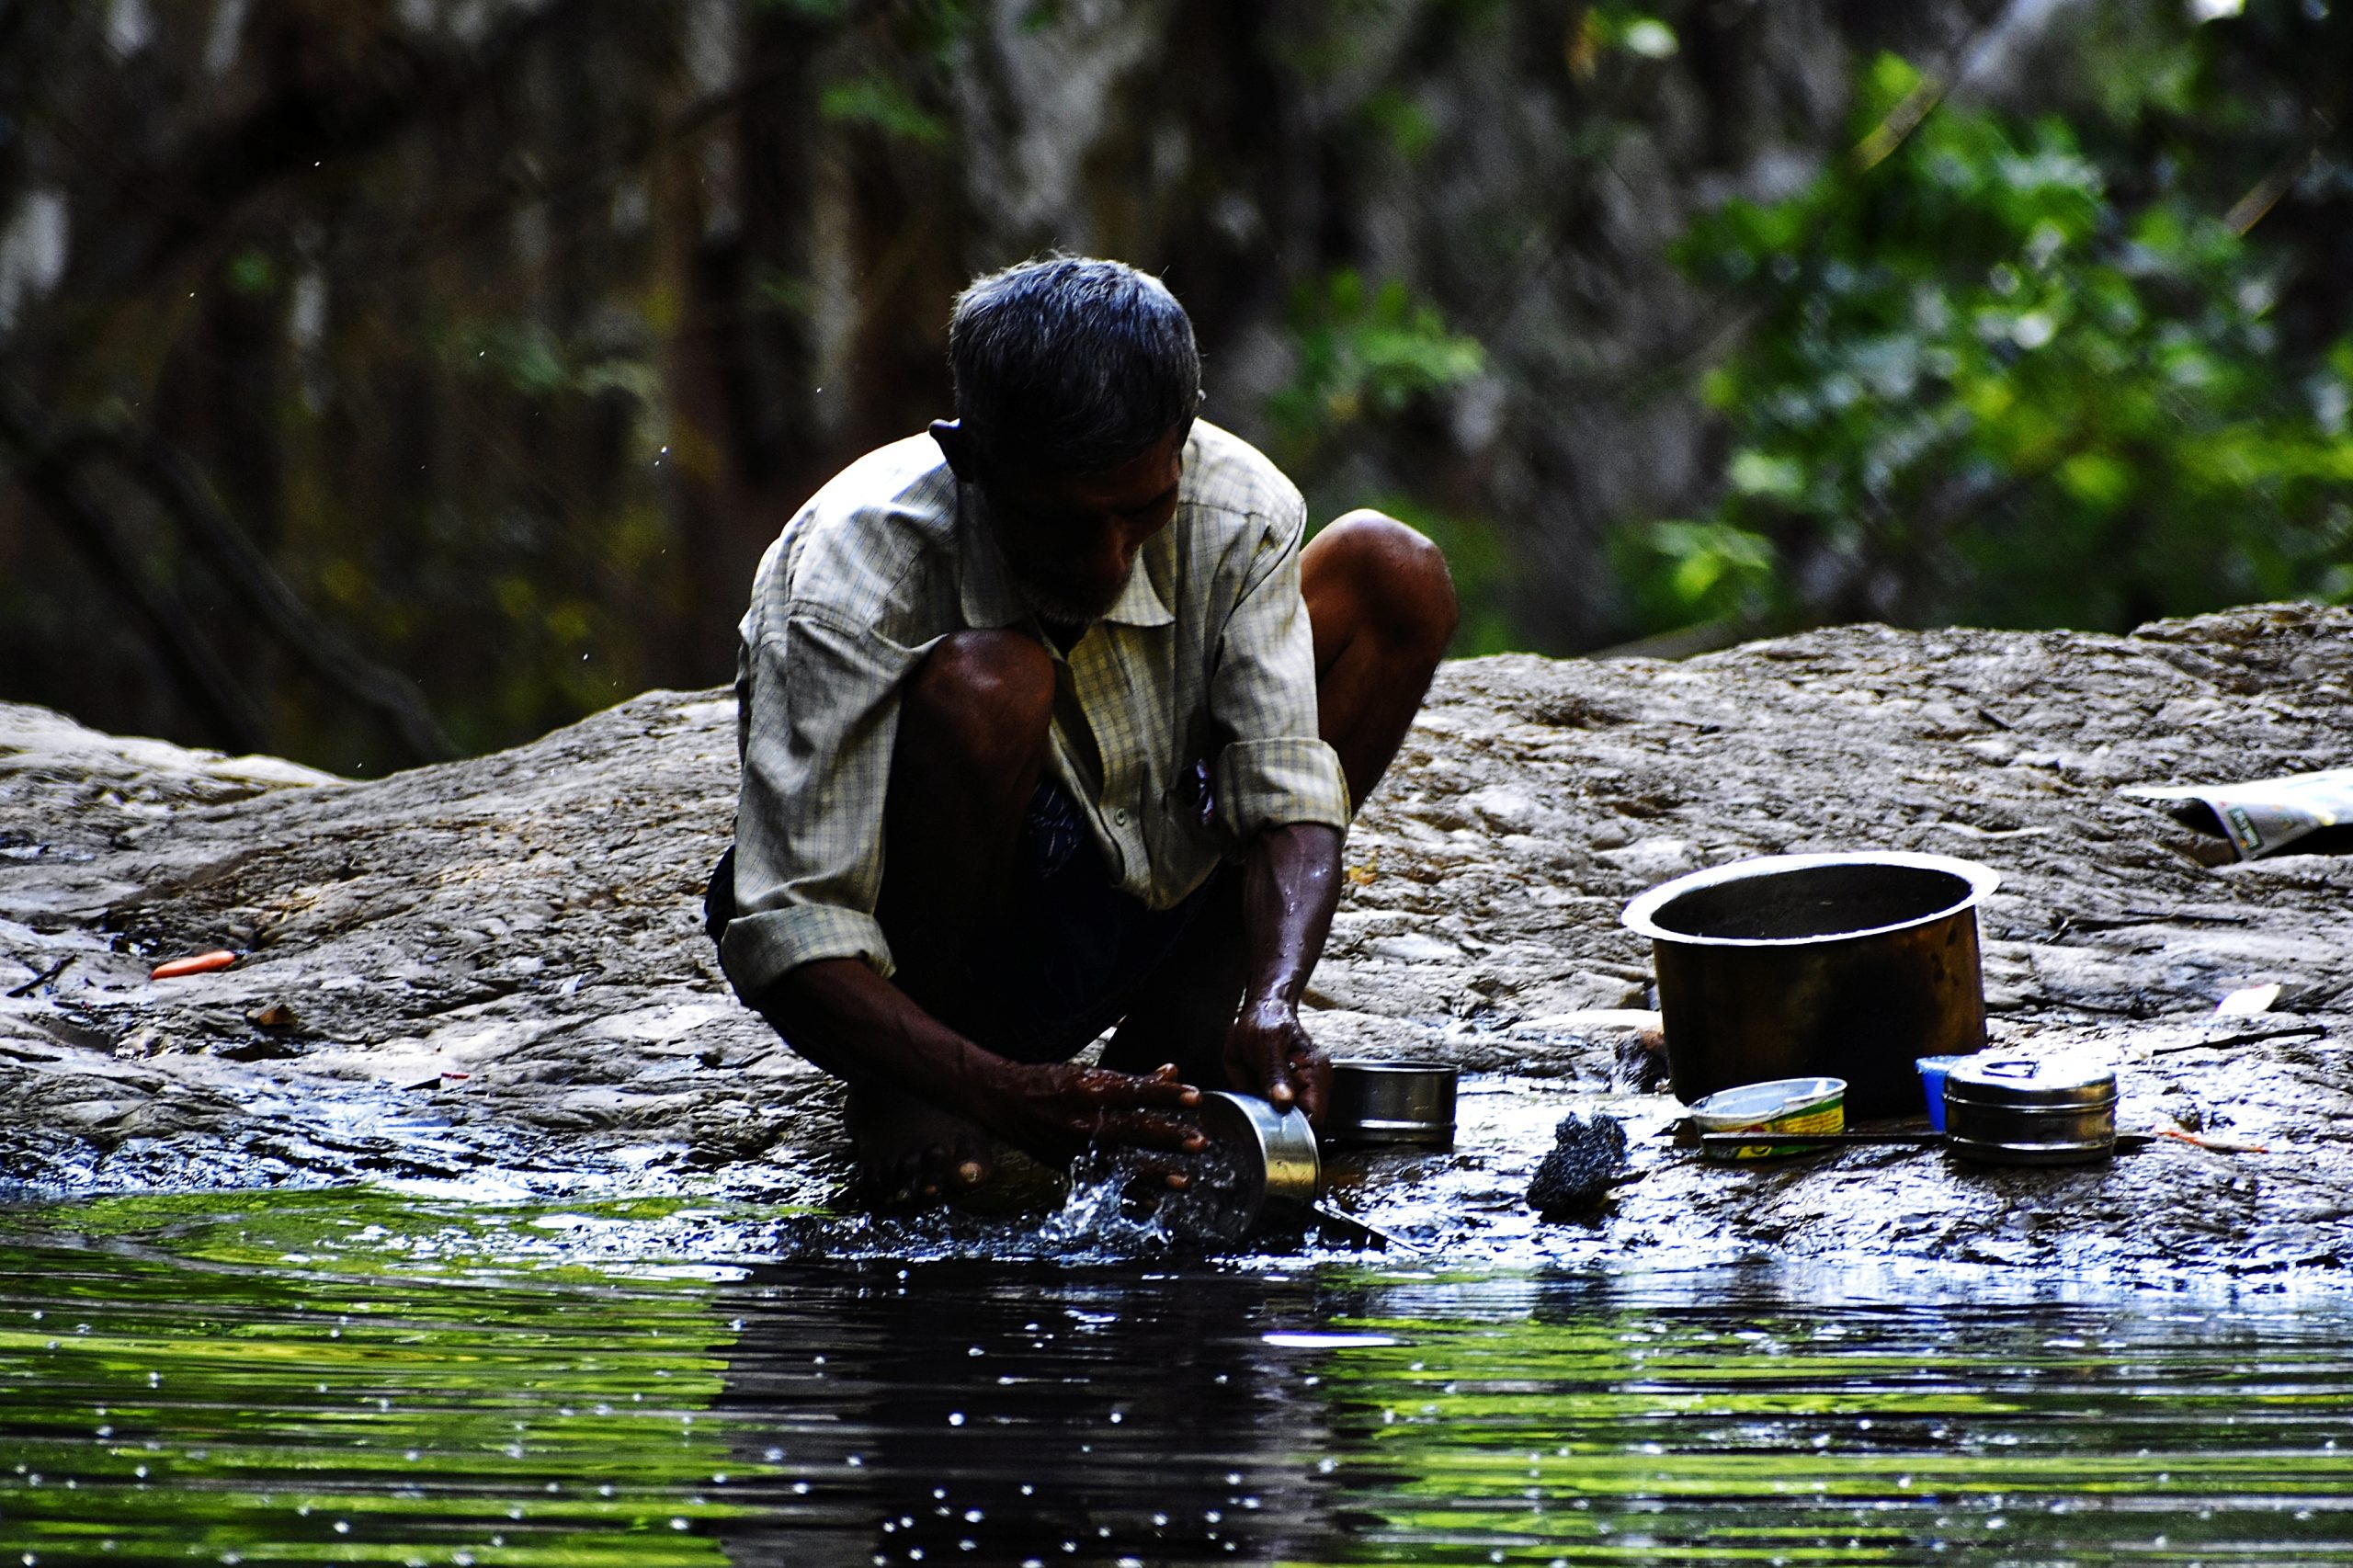 A man near river cleaning pots